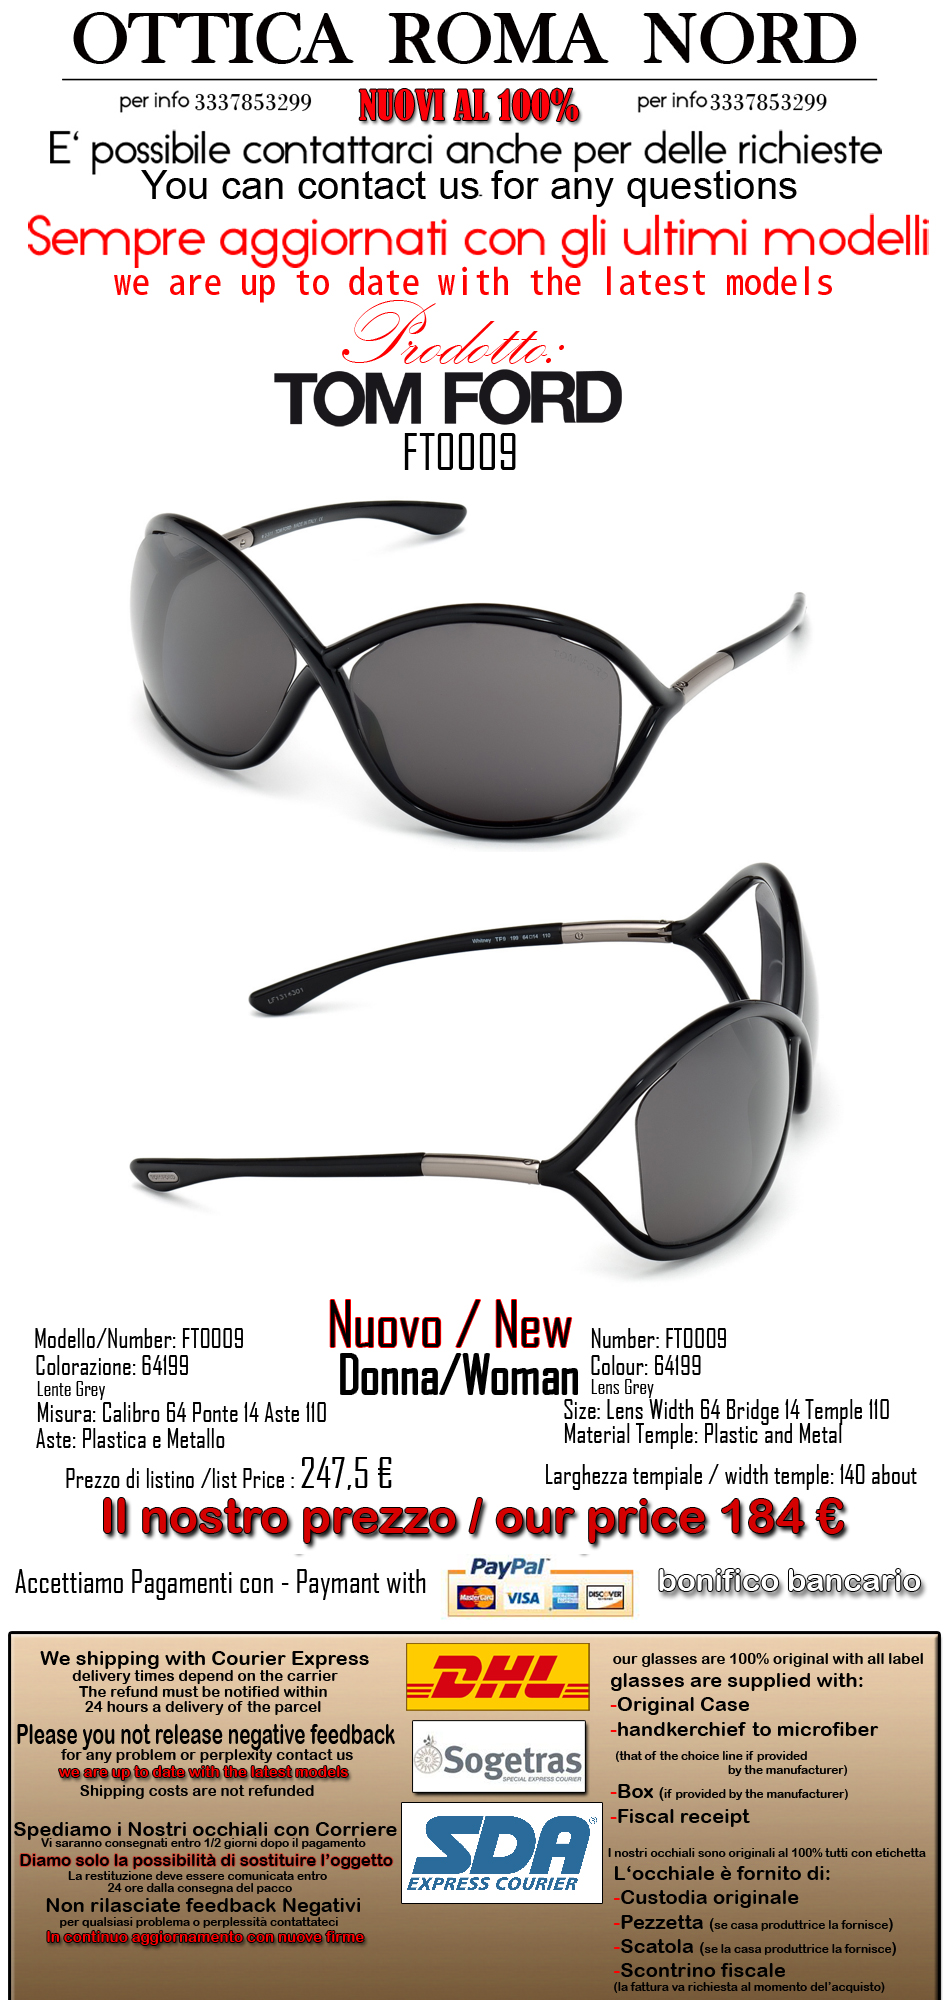 72120546ec TOM FORD FT 0009 WHITNEY 199 NEW COLLECTION SUNGLASSES SUNGLASSES ...